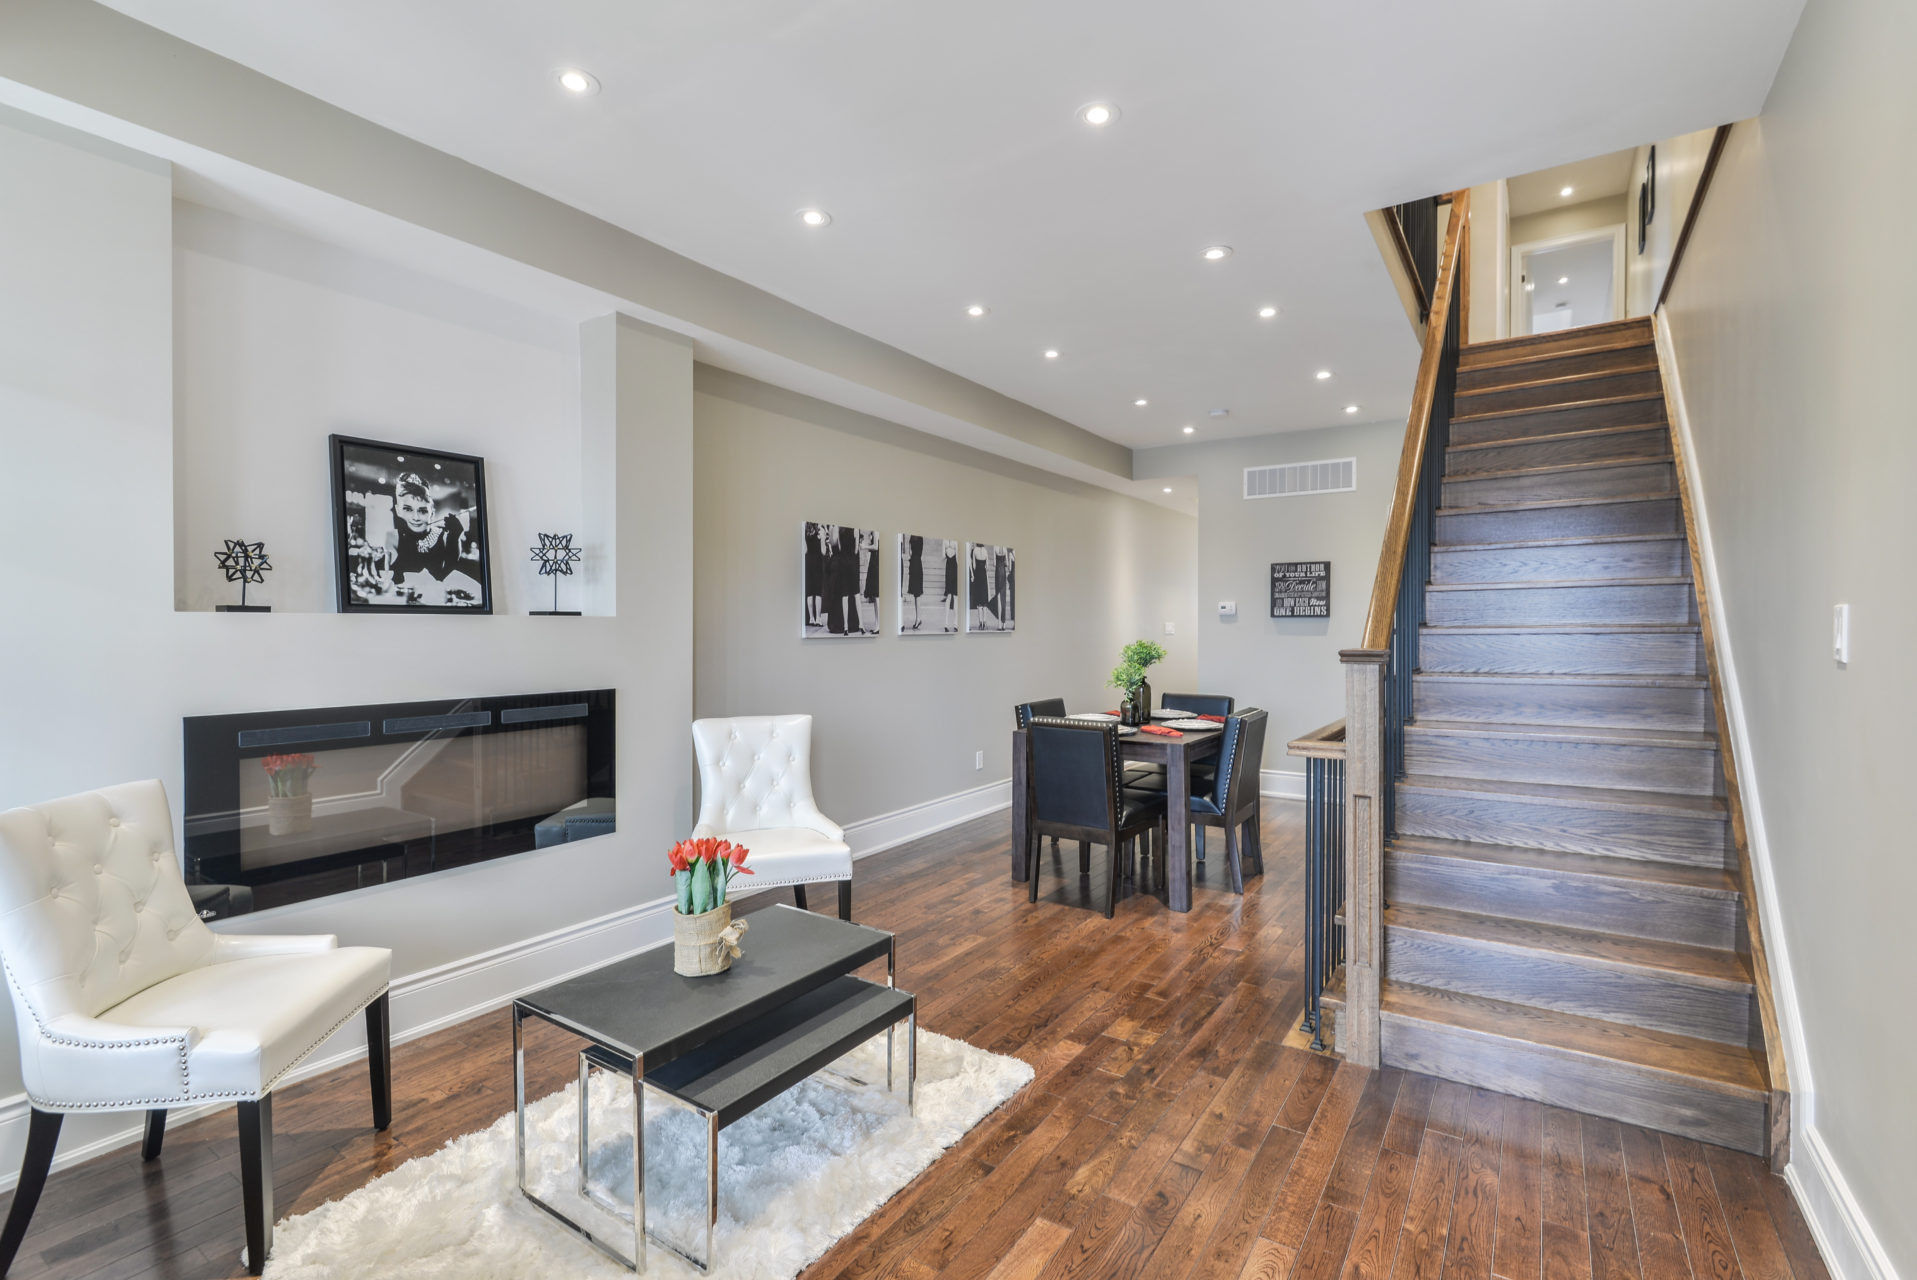 27 Wallace Ave - Toronto Dovercourt-Wallace-Emerson-Junction Homes For Sale In Toronto Real Estate Agent Sold Over Asking